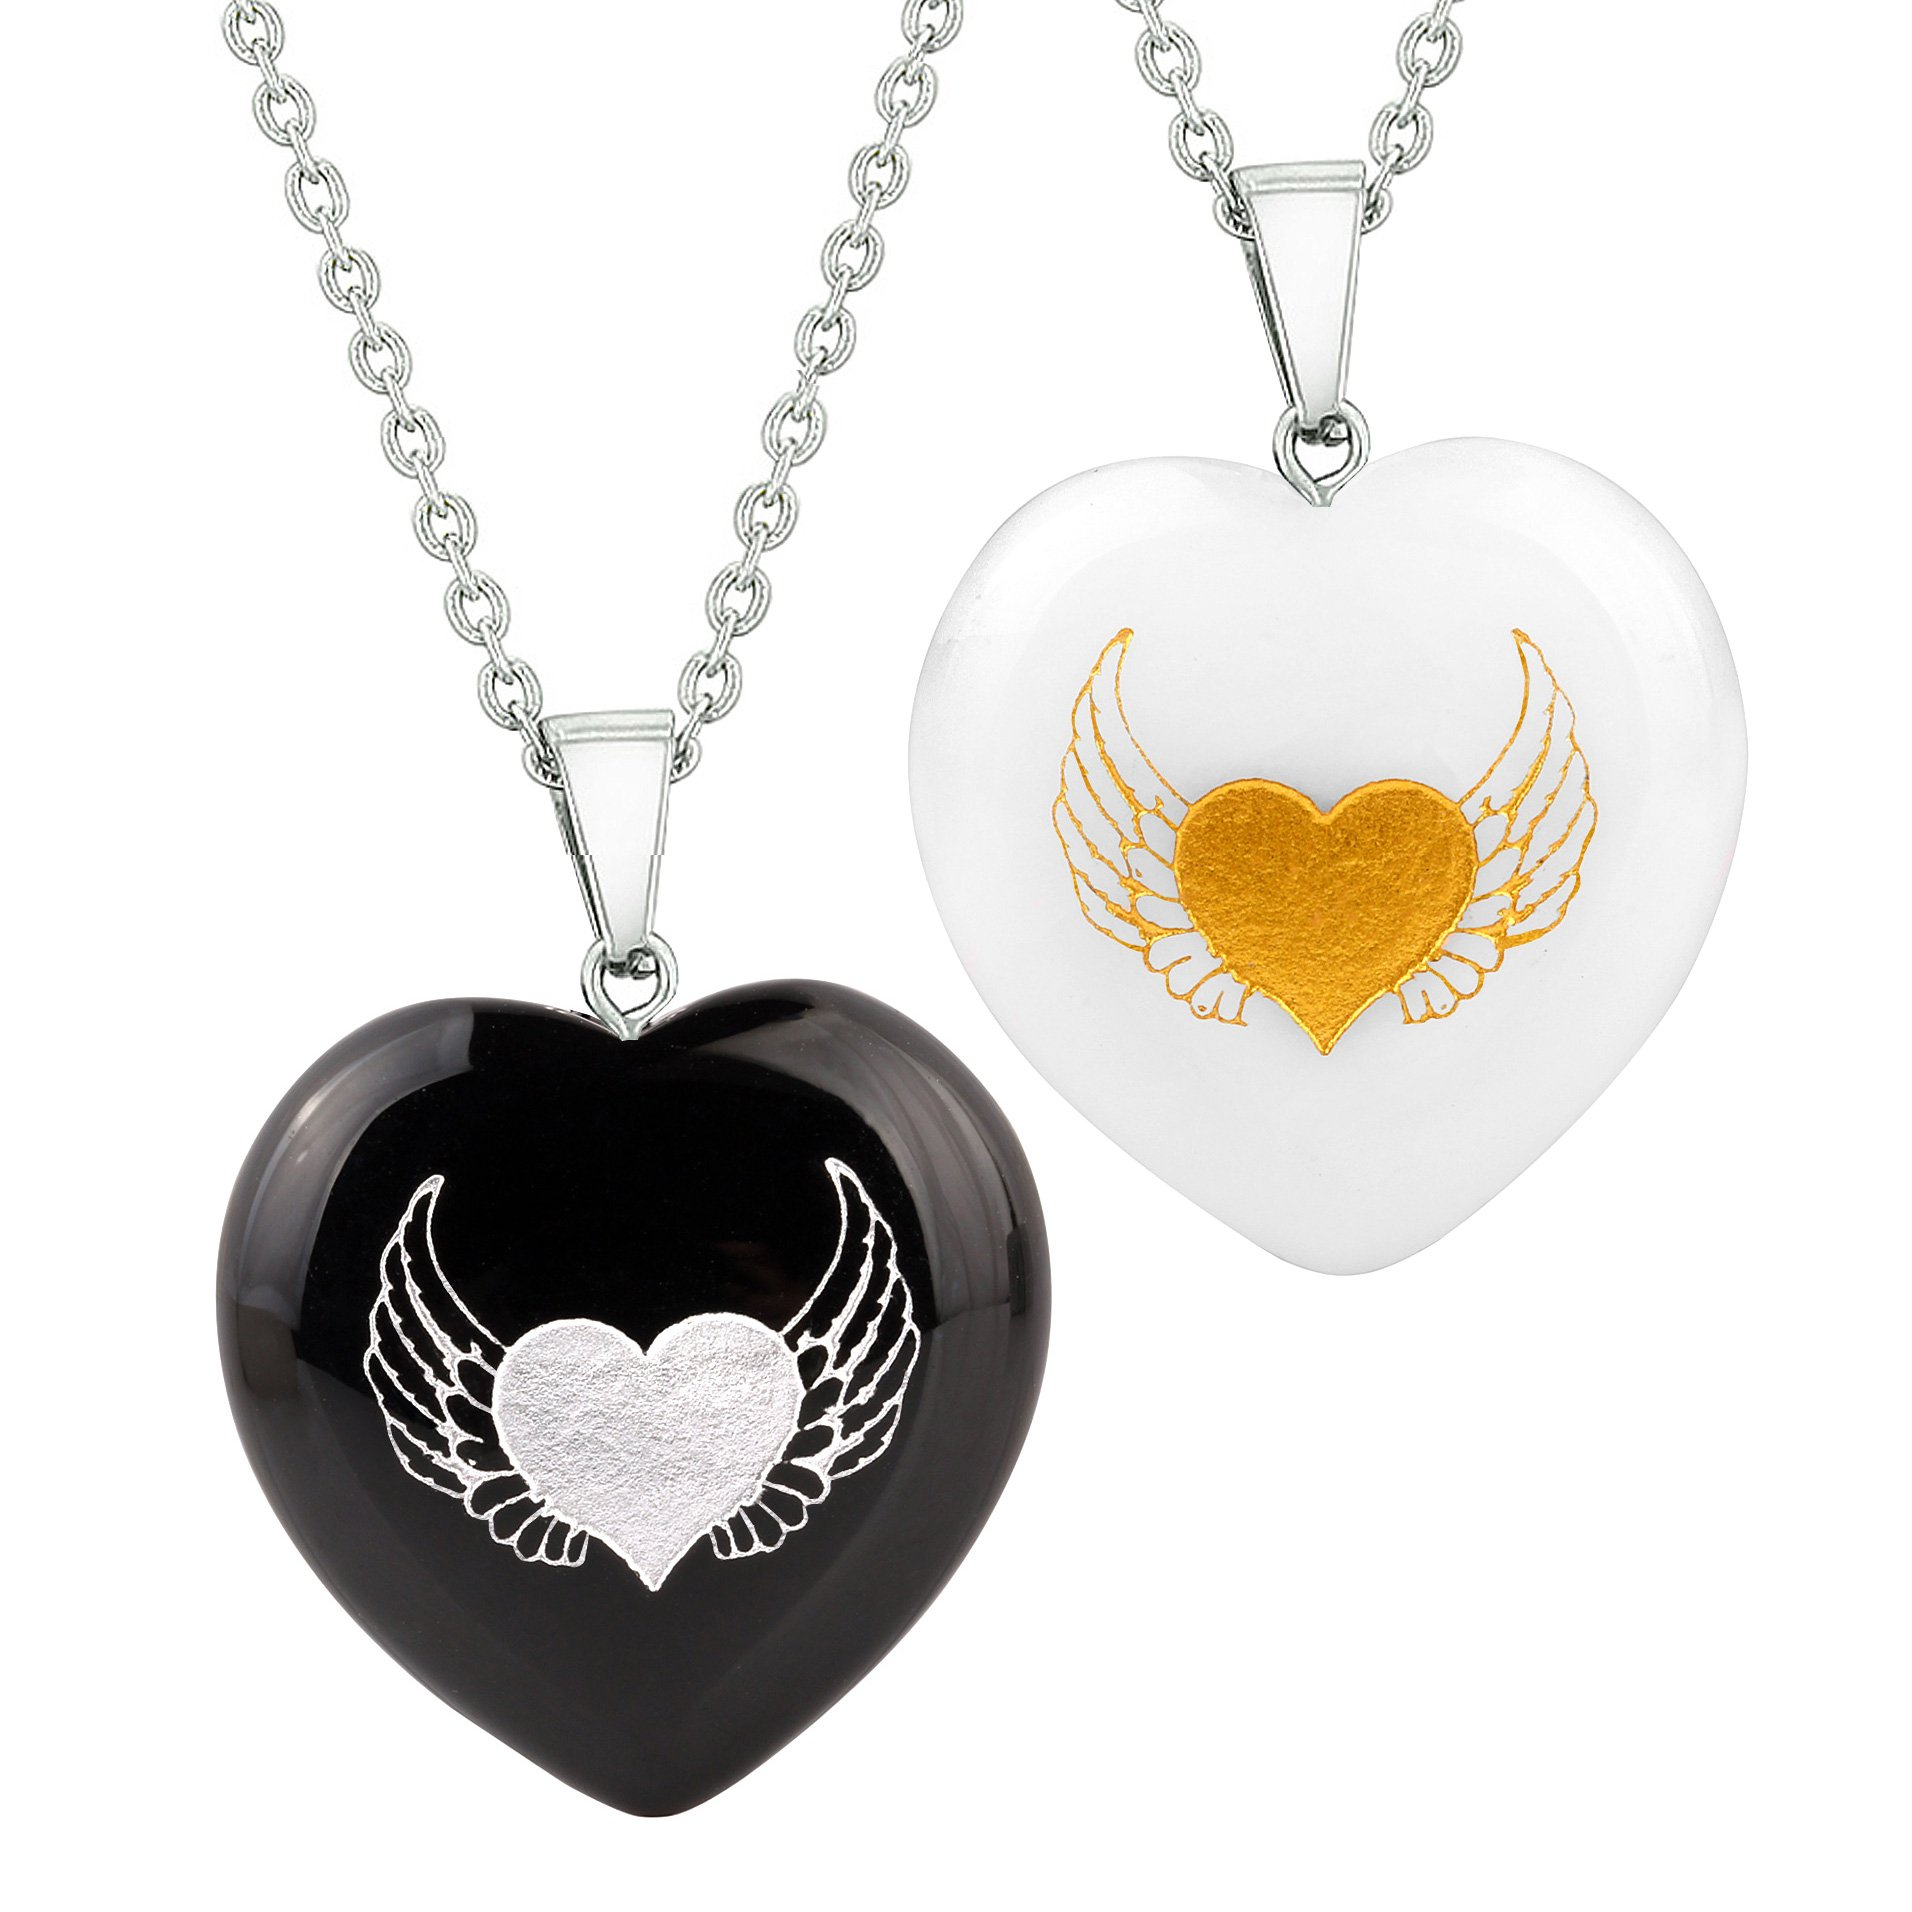 Heart Amulets Angel Wings Heart Love Love or Couples Best Friends Agate White Quartz Necklaces